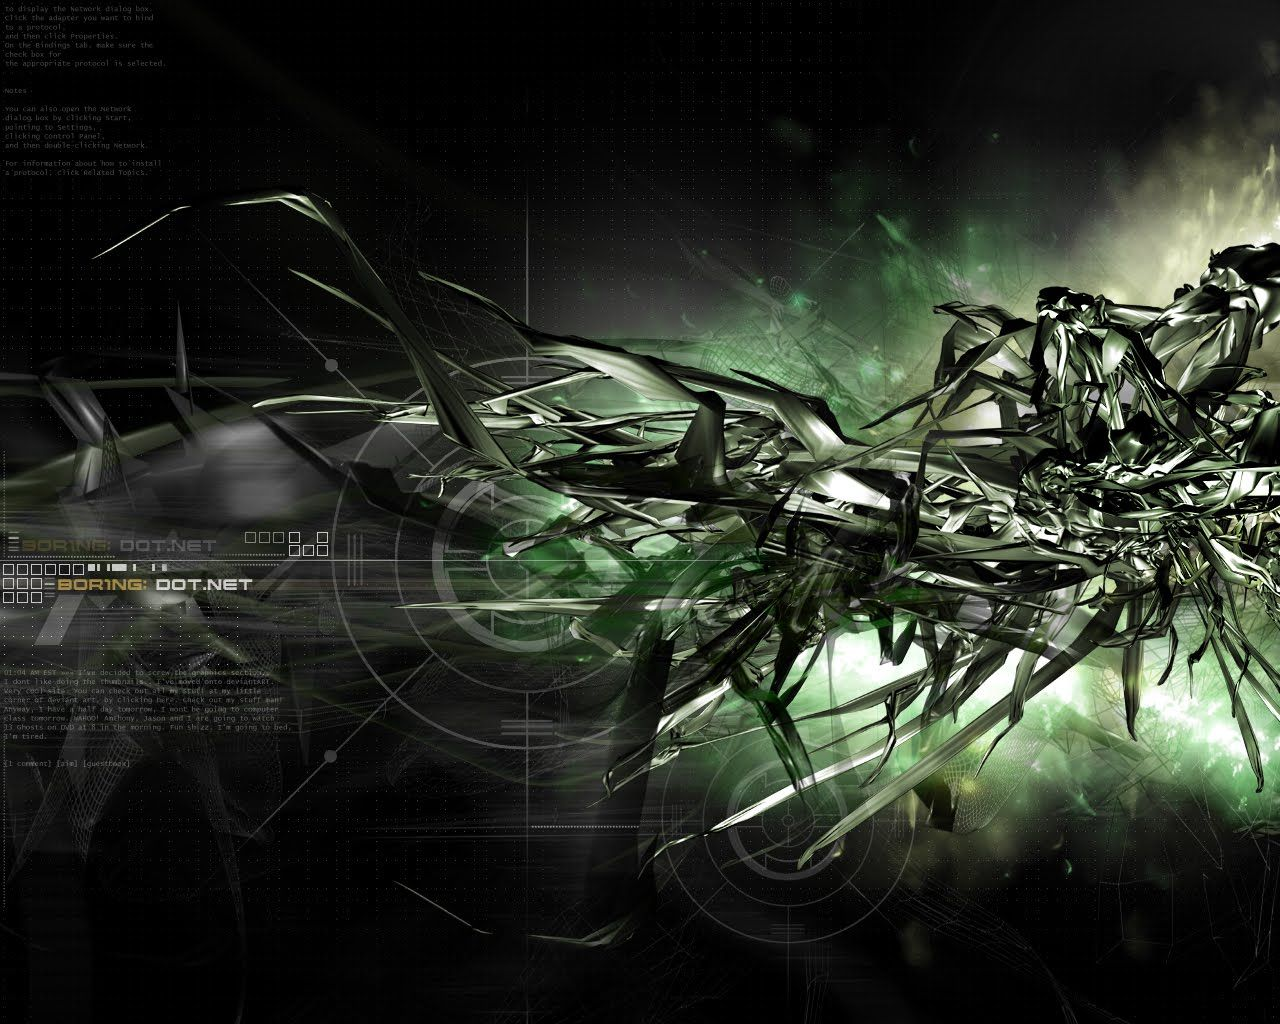 firm black lines like a robot | 3d & abstract wallpapers